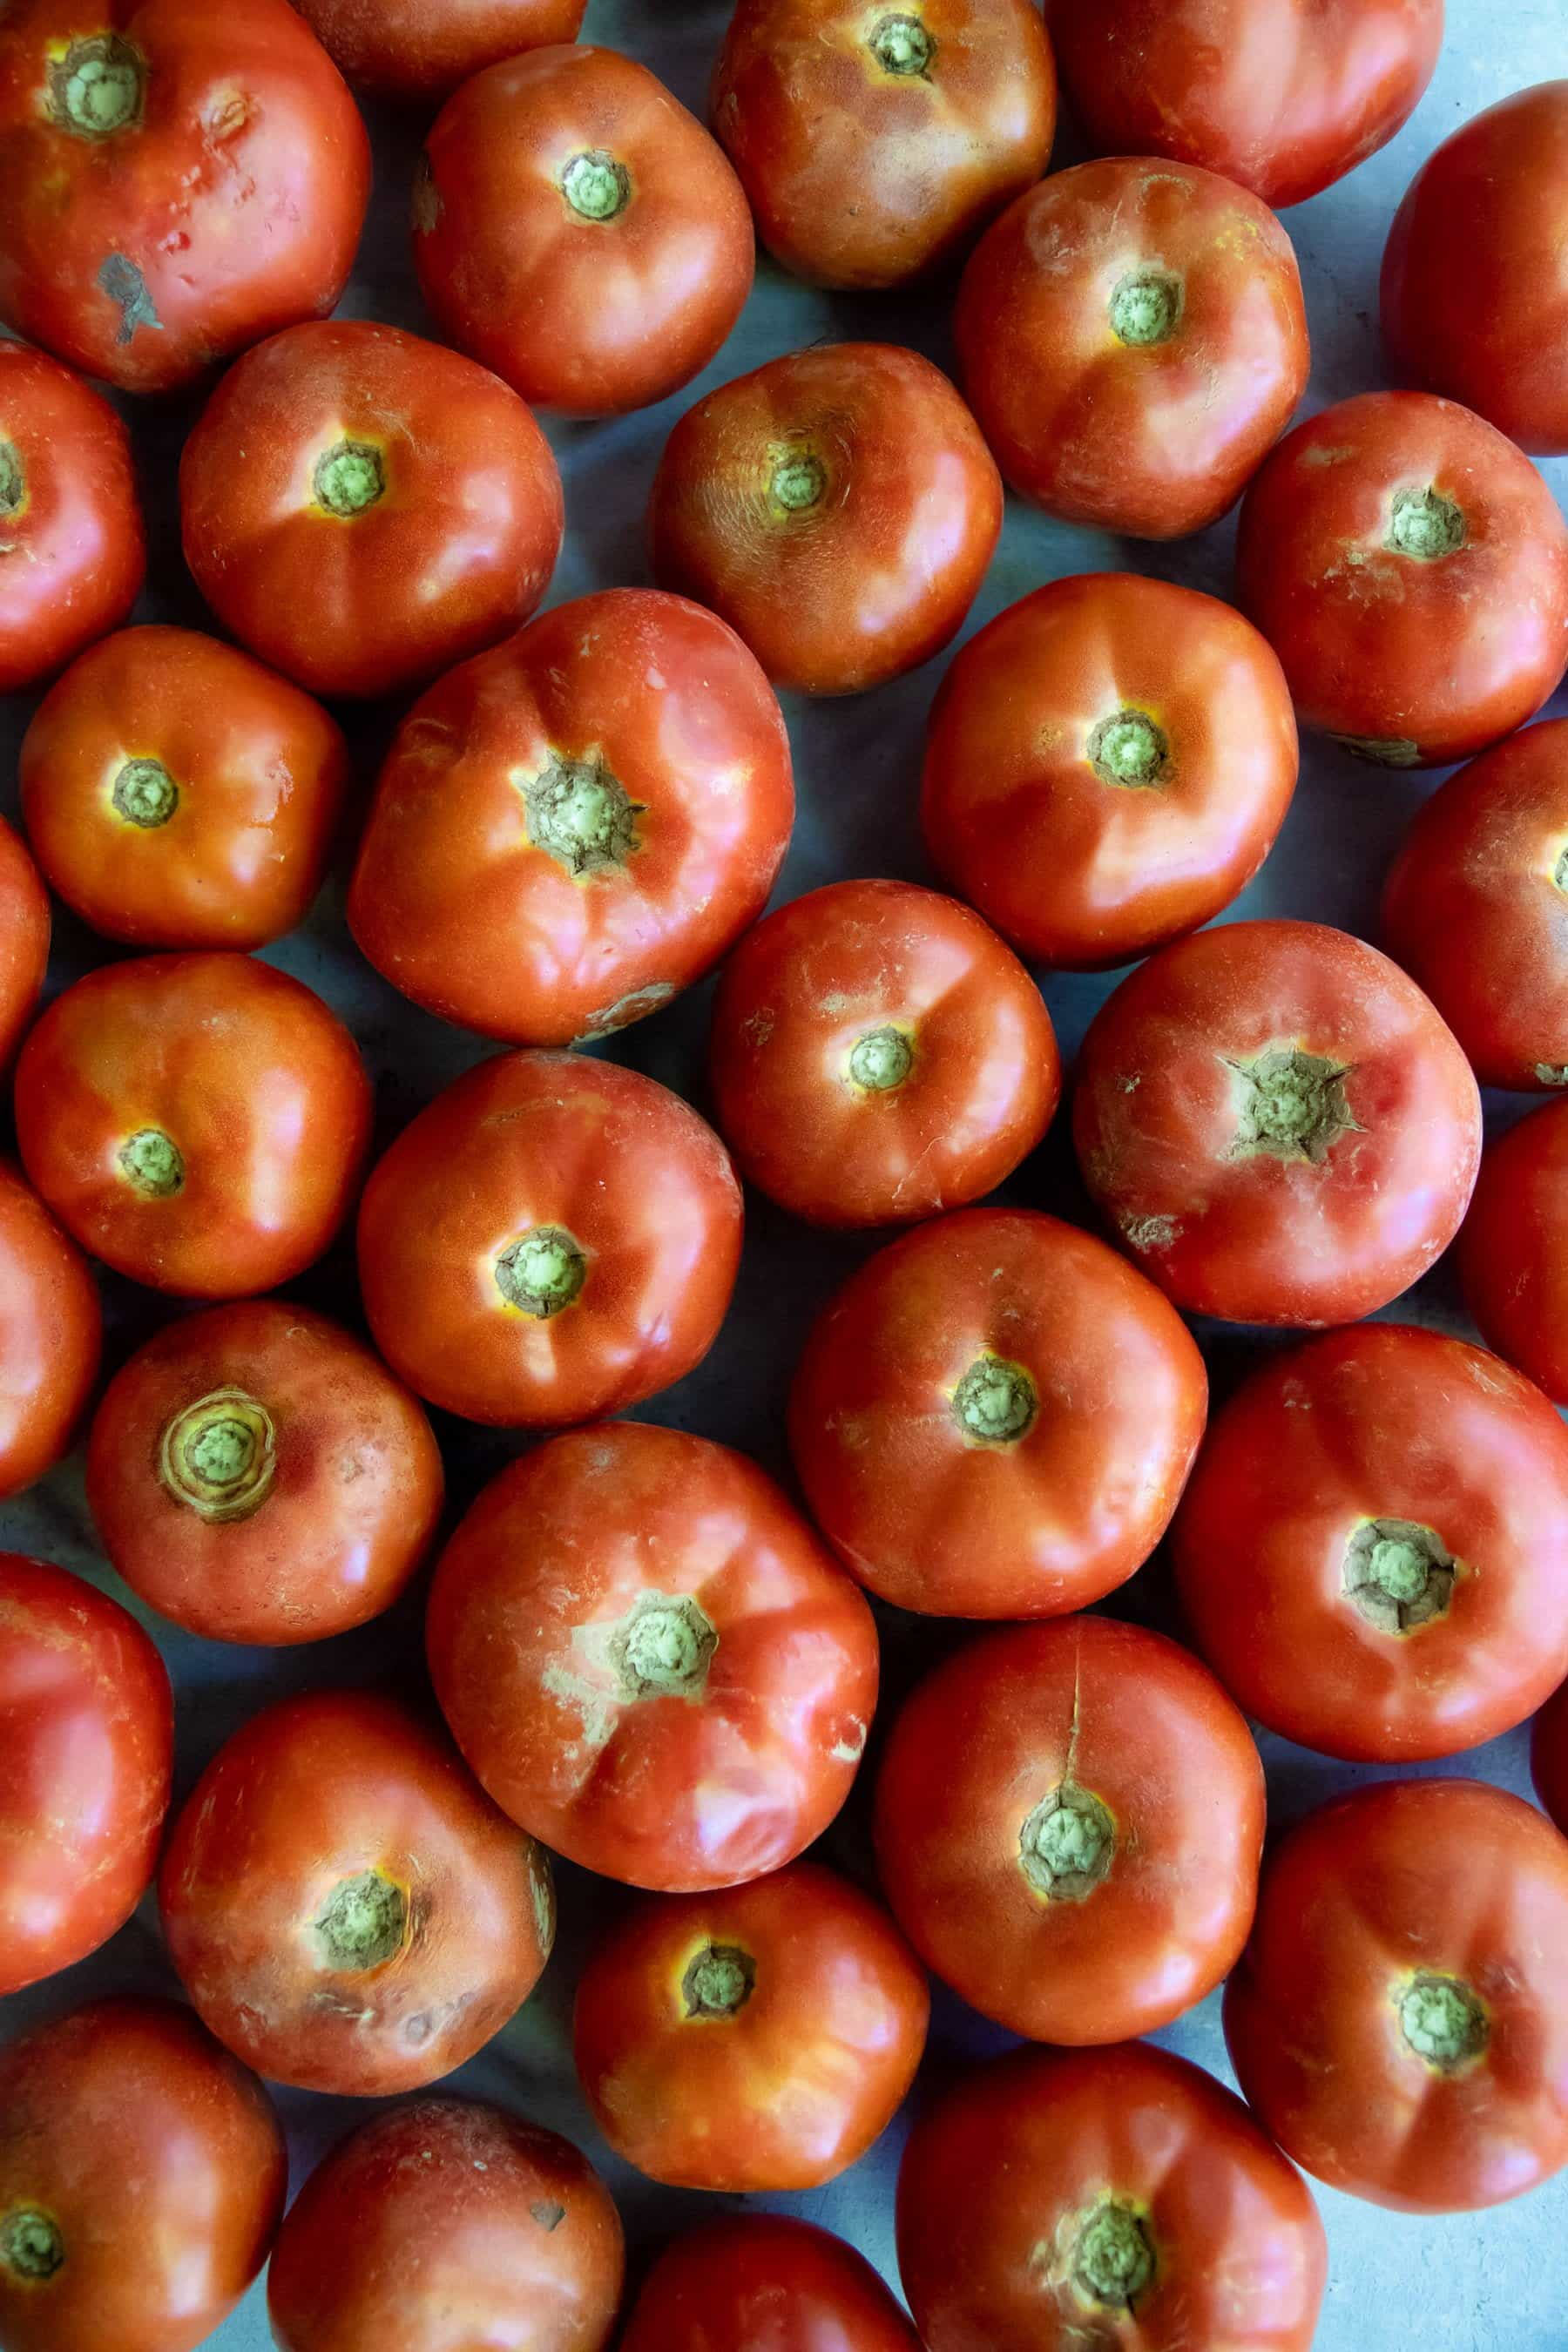 Overhead shot of homegrown tomatoes